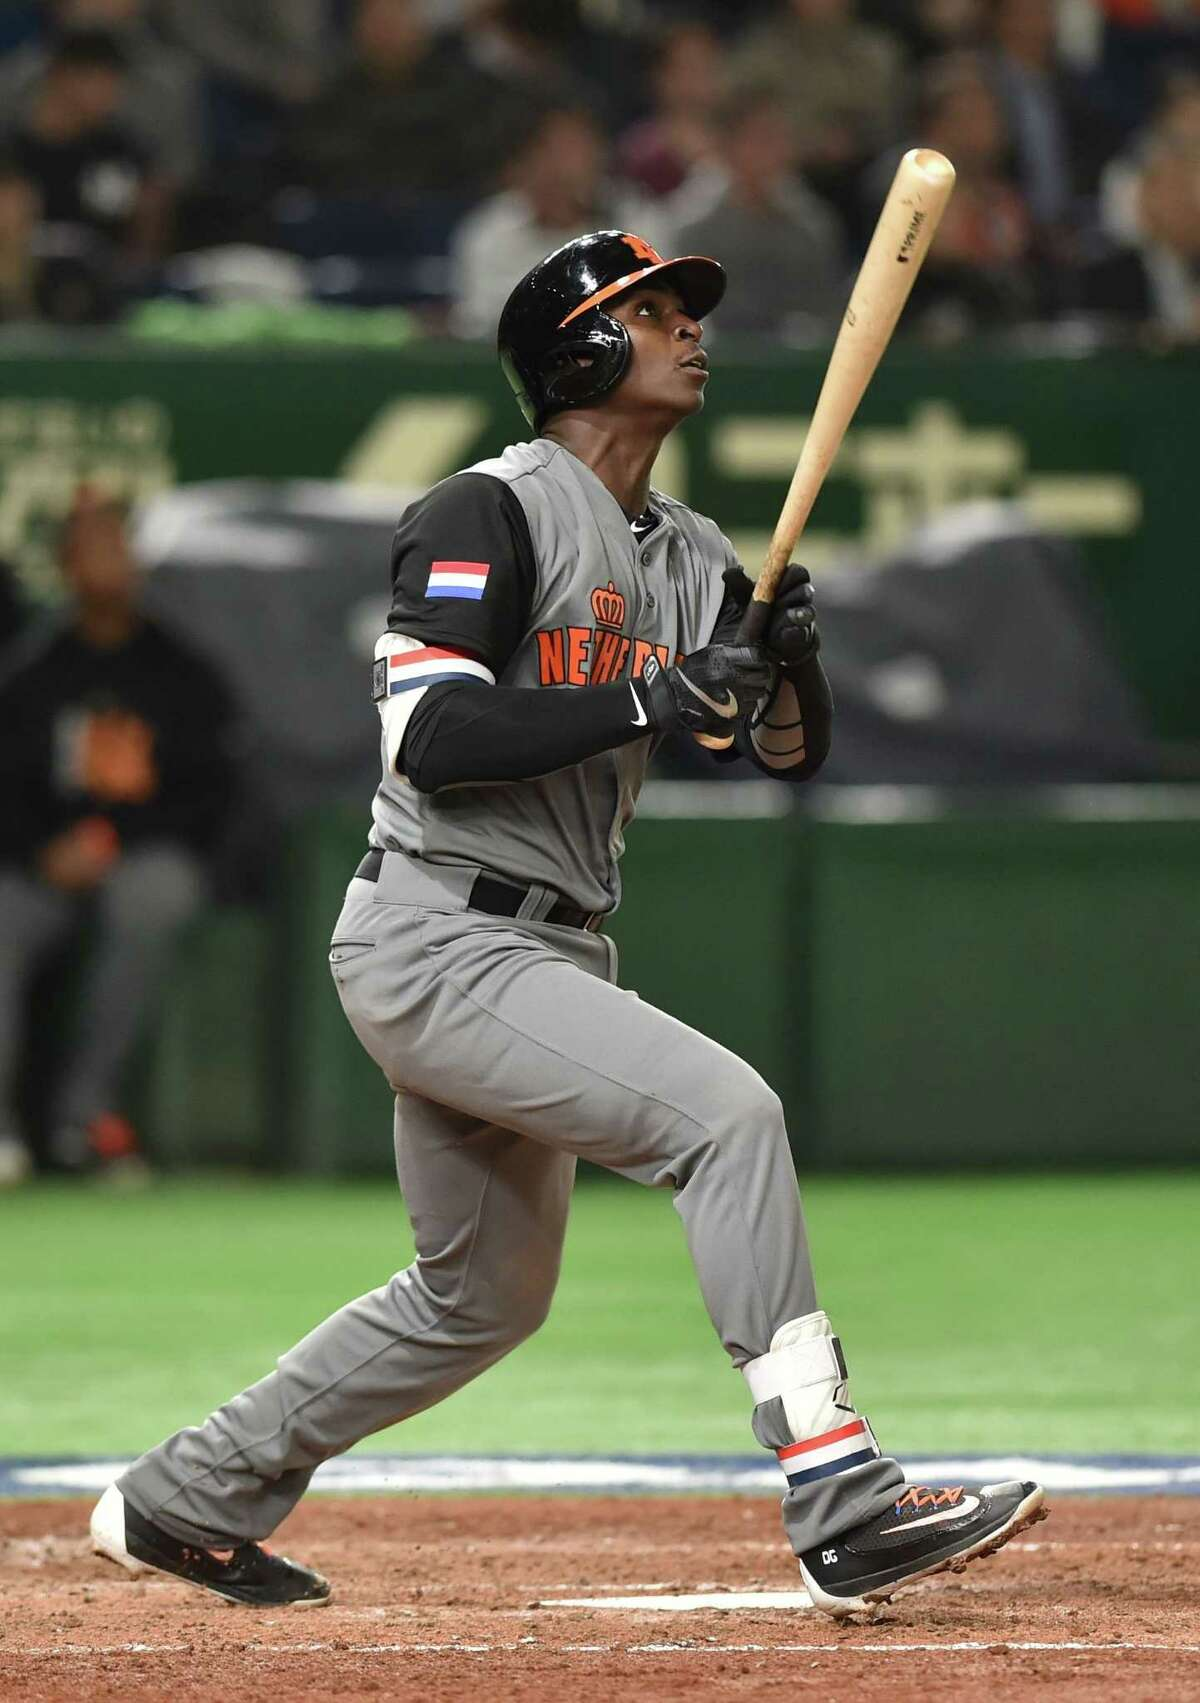 Netherlands' Didi Gregorius follows his three-run homer in the top of the fourth inning during the World Baseball Classic Pool E second round match between Israel and the Netherlands at Tokyo Dome in Tokyo on March 13, 2017. / AFP PHOTO / KAZUHIRO NOGIKAZUHIRO NOGI/AFP/Getty Images